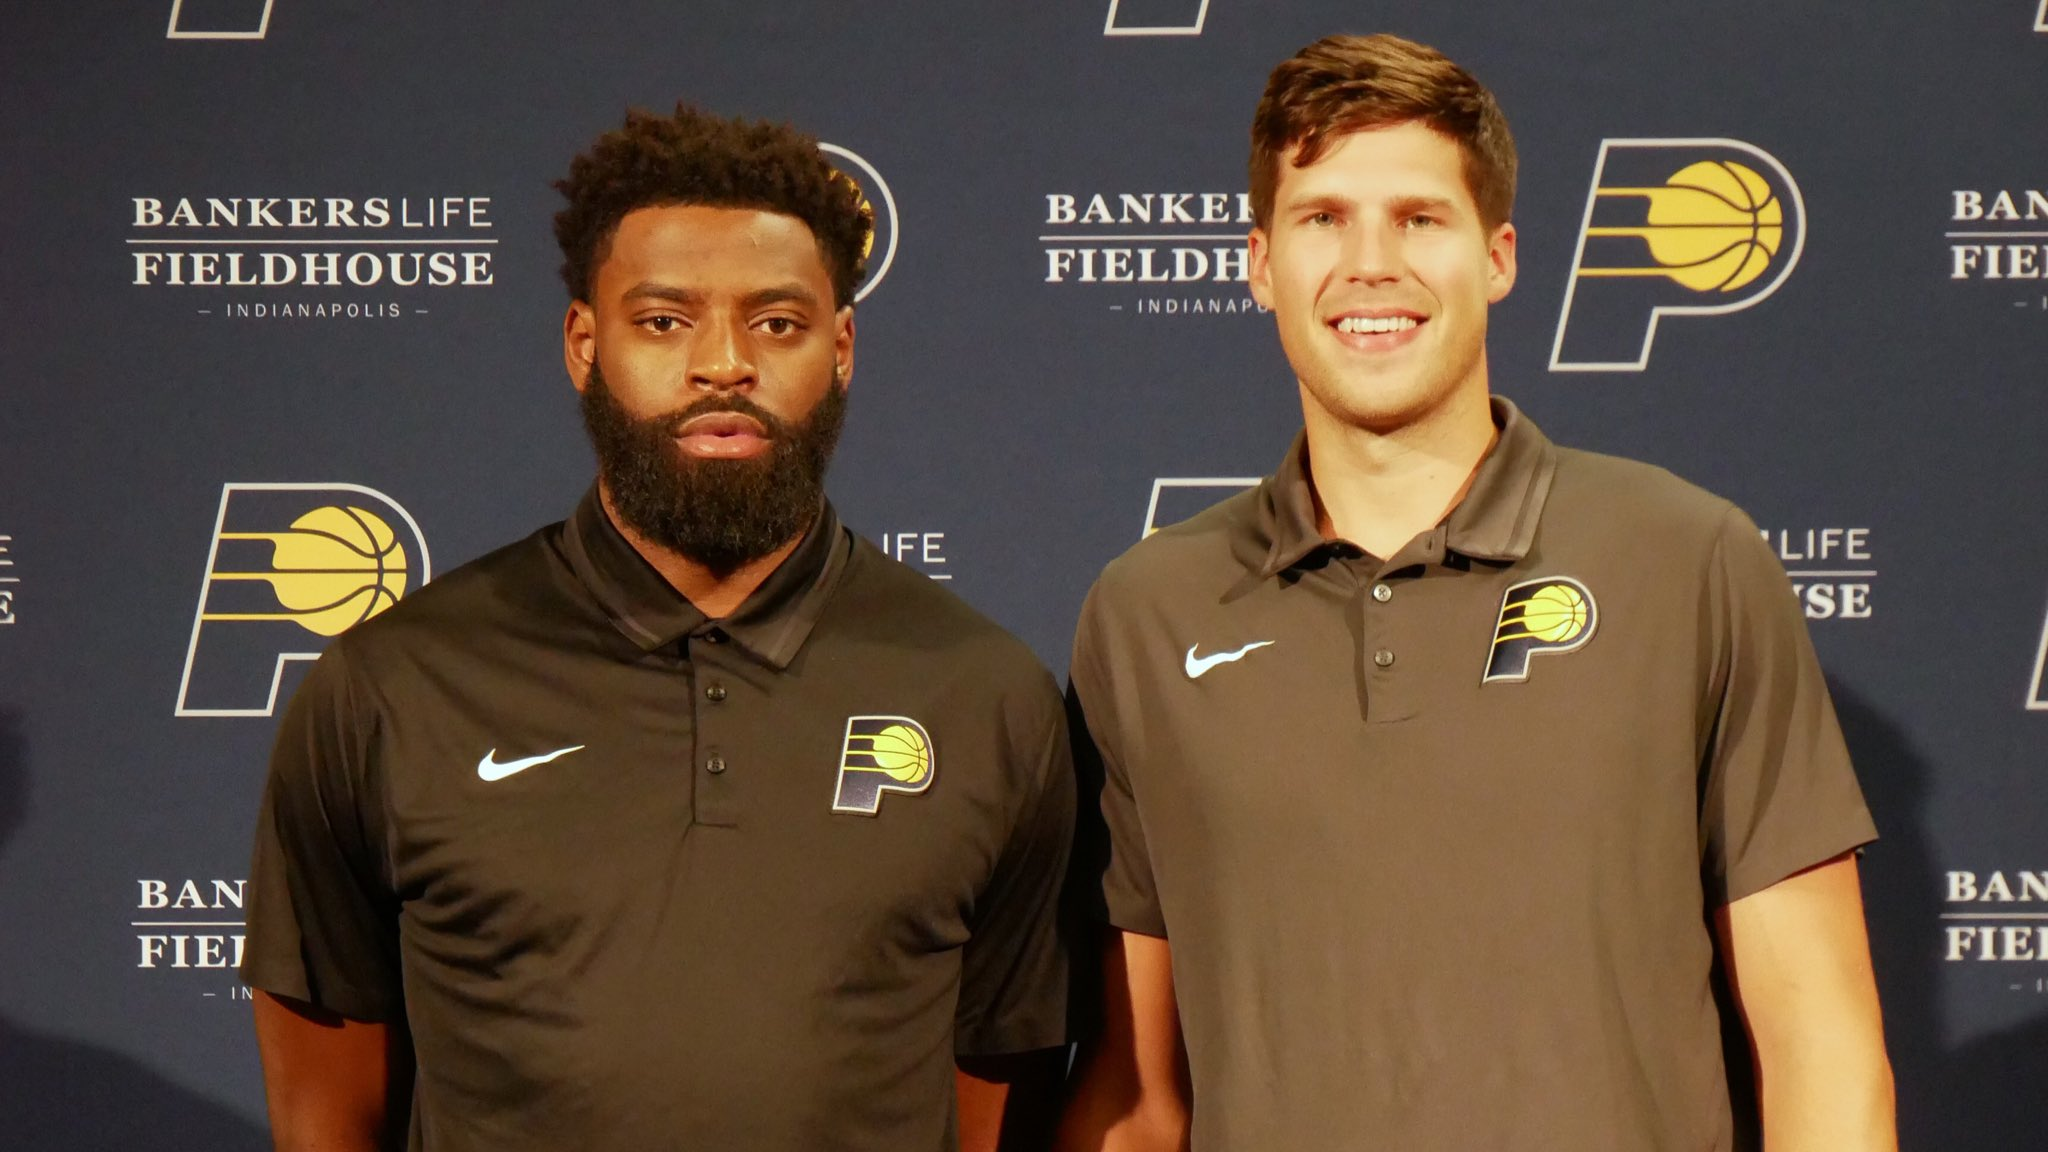 Welcome to Indiana, @TyrekeEvans and @dougmcdermott!   #WeGrowBasketballHere https://t.co/WBMloyPE0l